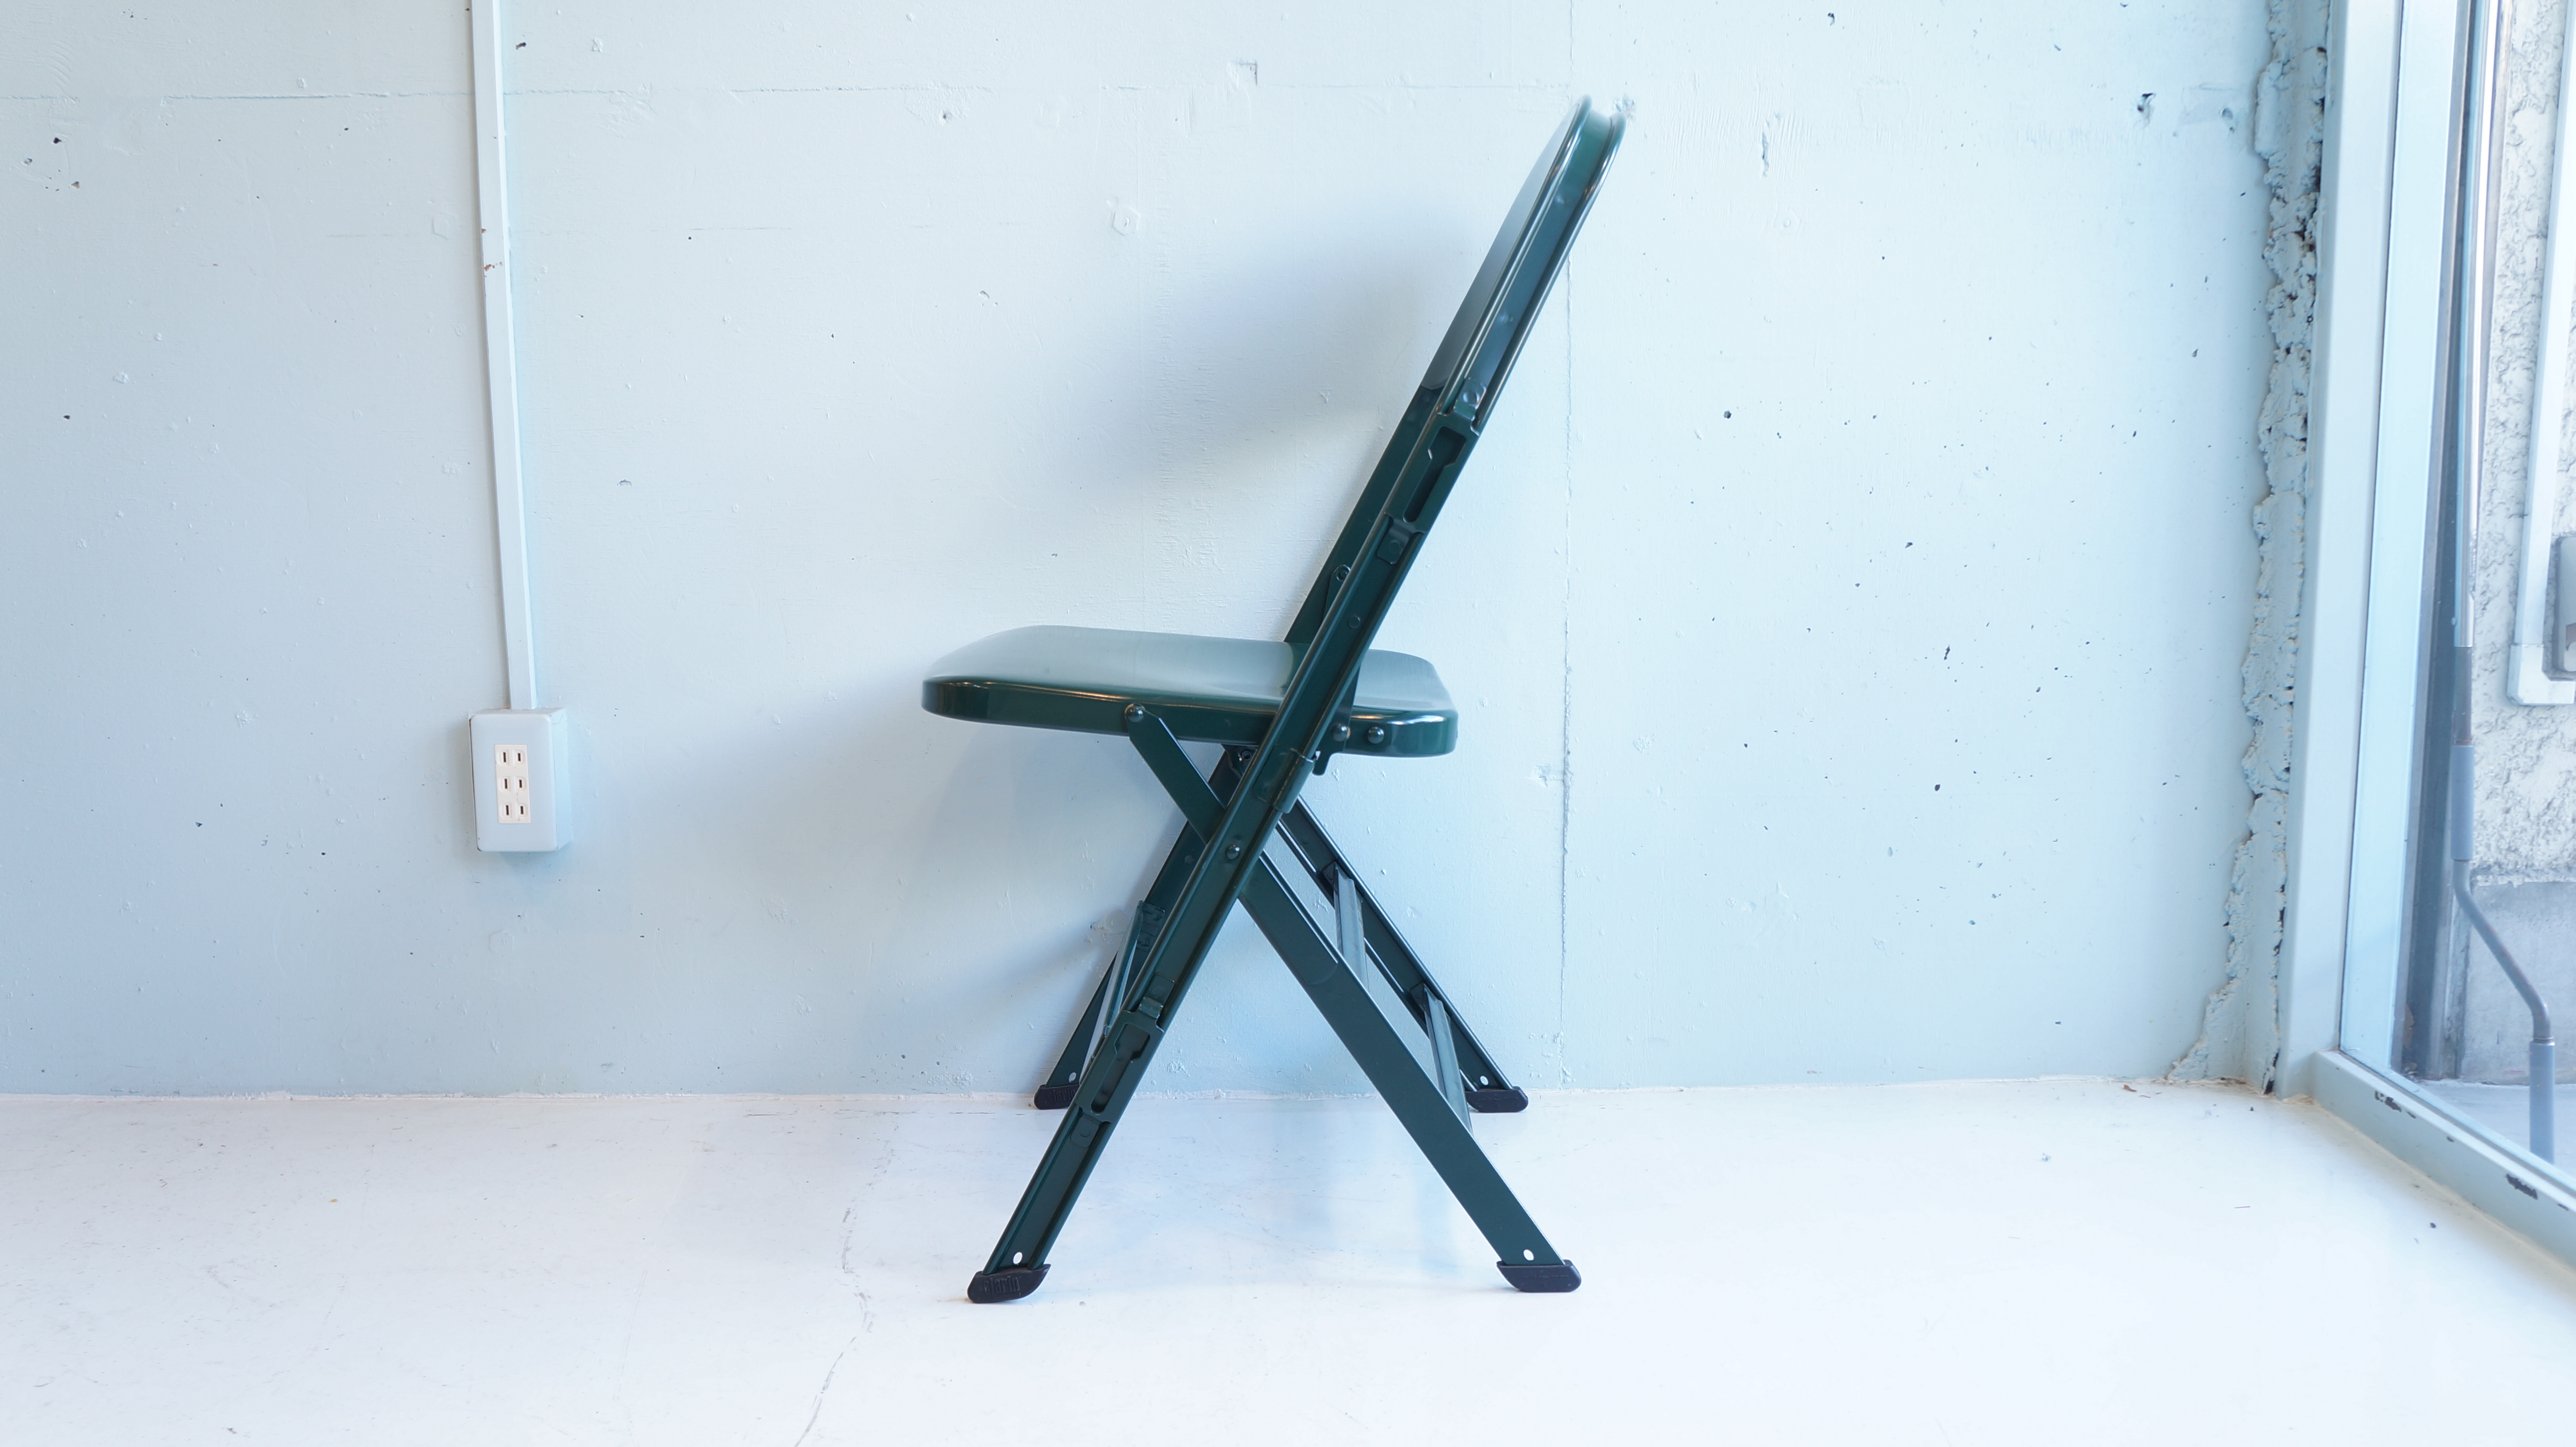 PACIFIC FURNITURE SERVICE ALL STEEL FOLDING CHAIR made by CLARIN USA / パシフィックファニチャーサービス クラリン社製 オールスチール フォールディングチェア アメリカ製